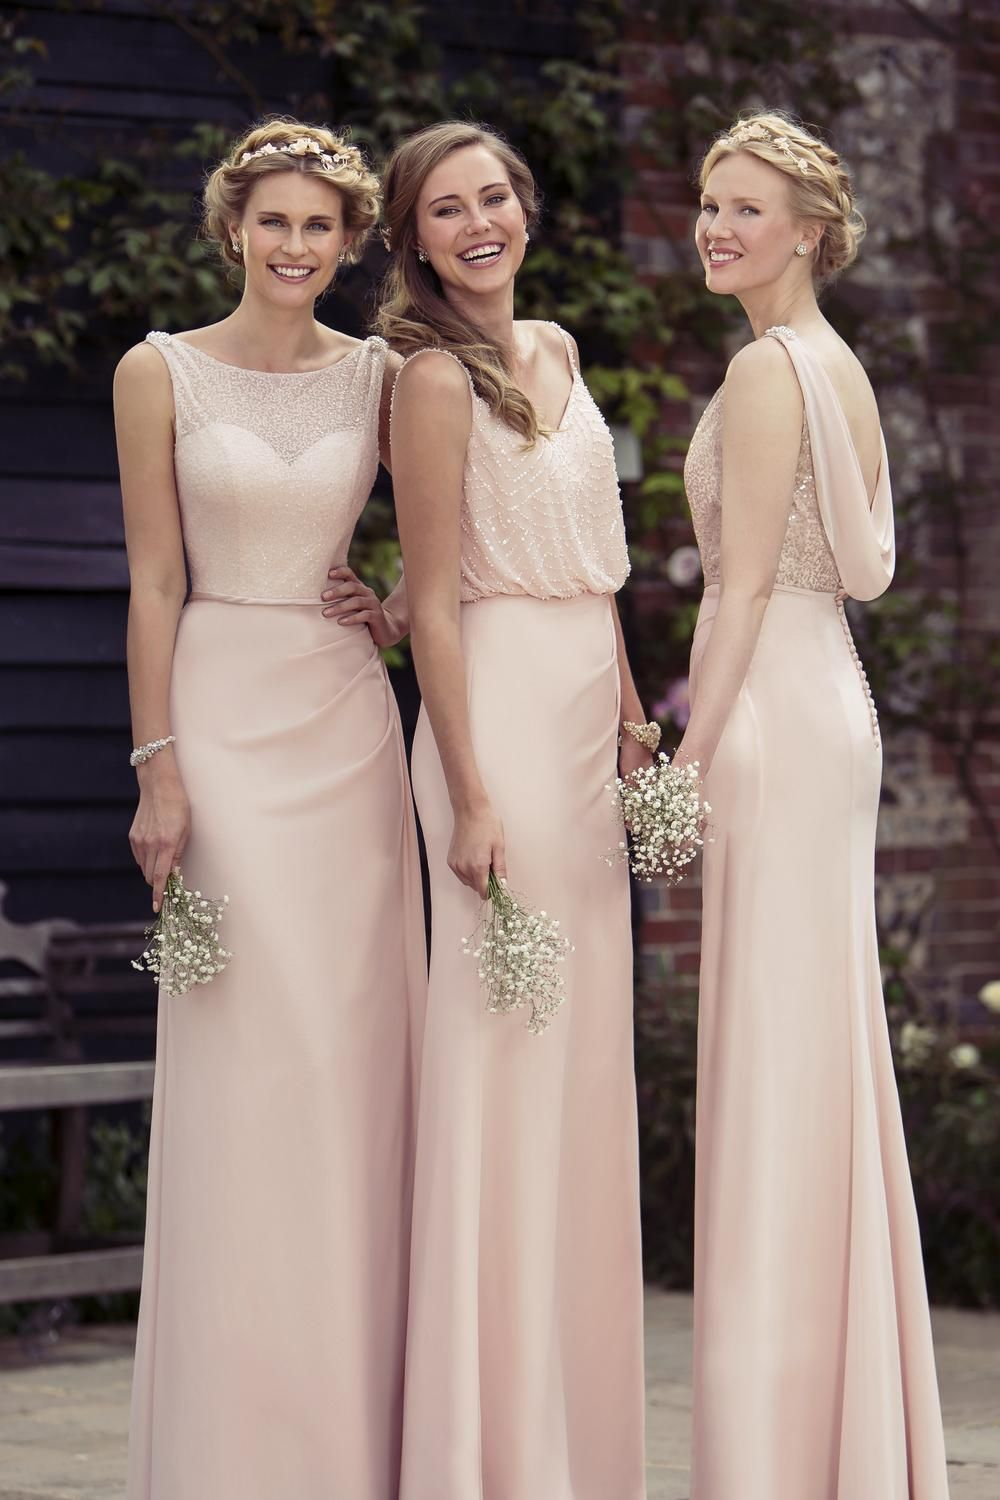 Bridesmaids dresses lori g bridal true bride bridesmaid dresses ombrellifo Images